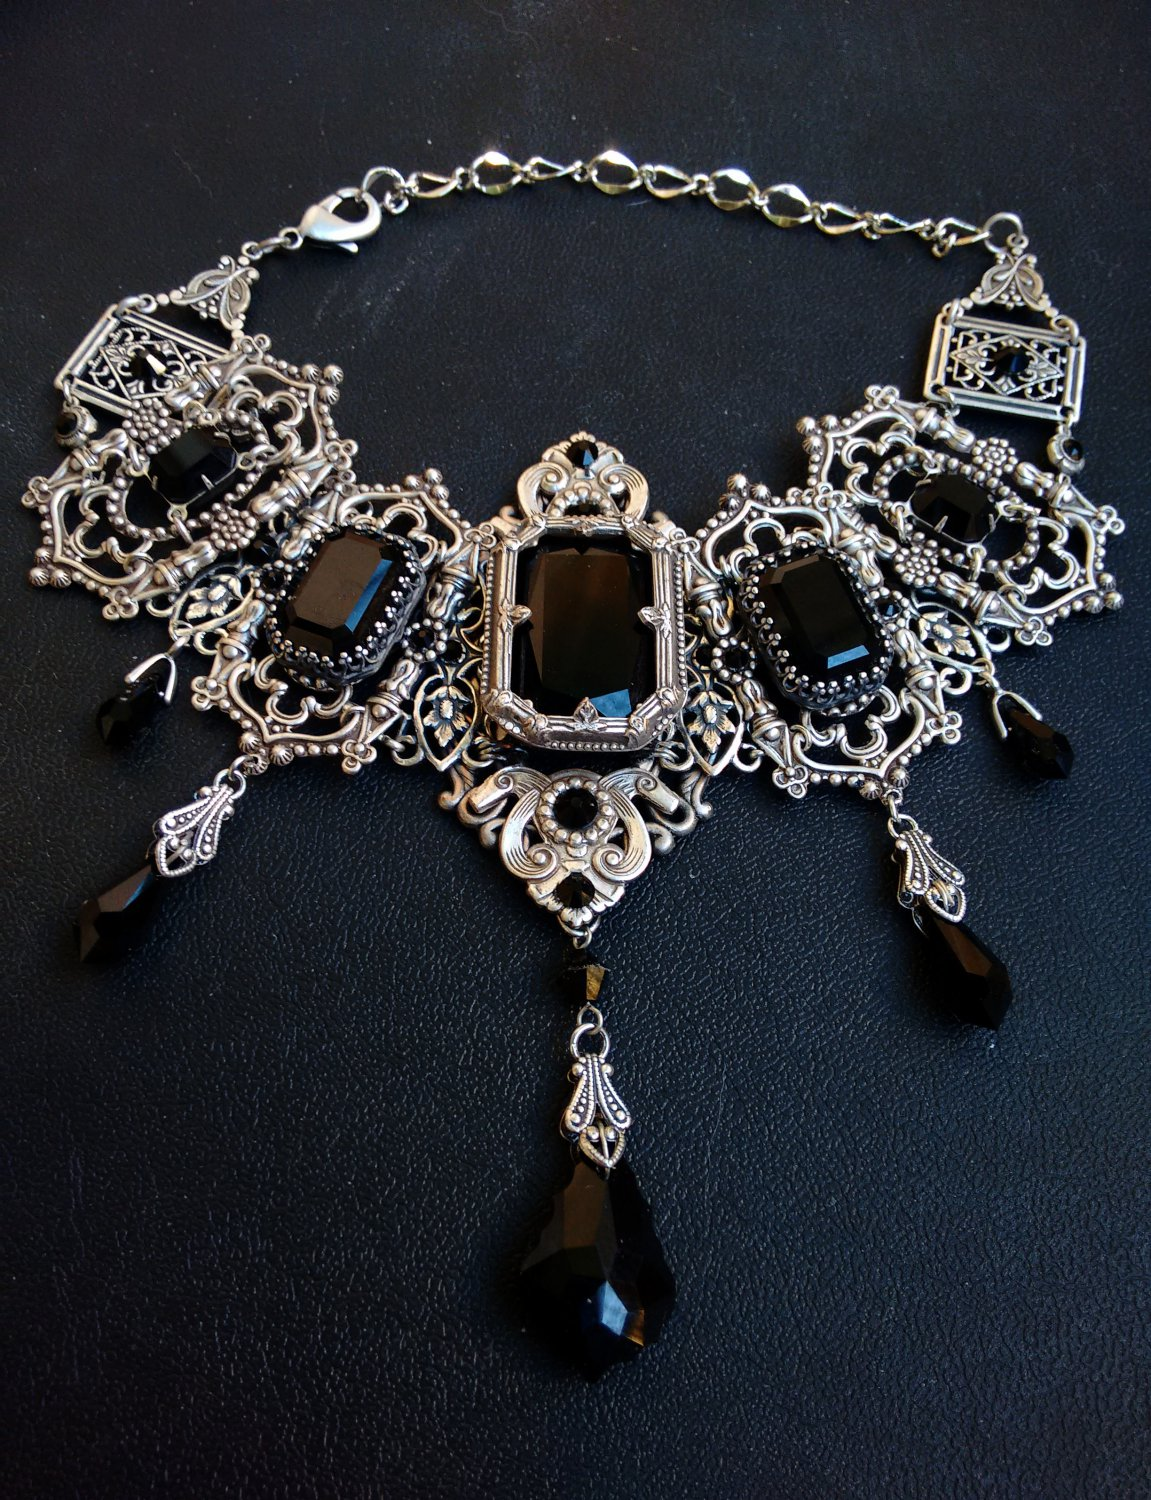 Silver Filigree Gothic Bridal Choker with Black Swarovski Crystals